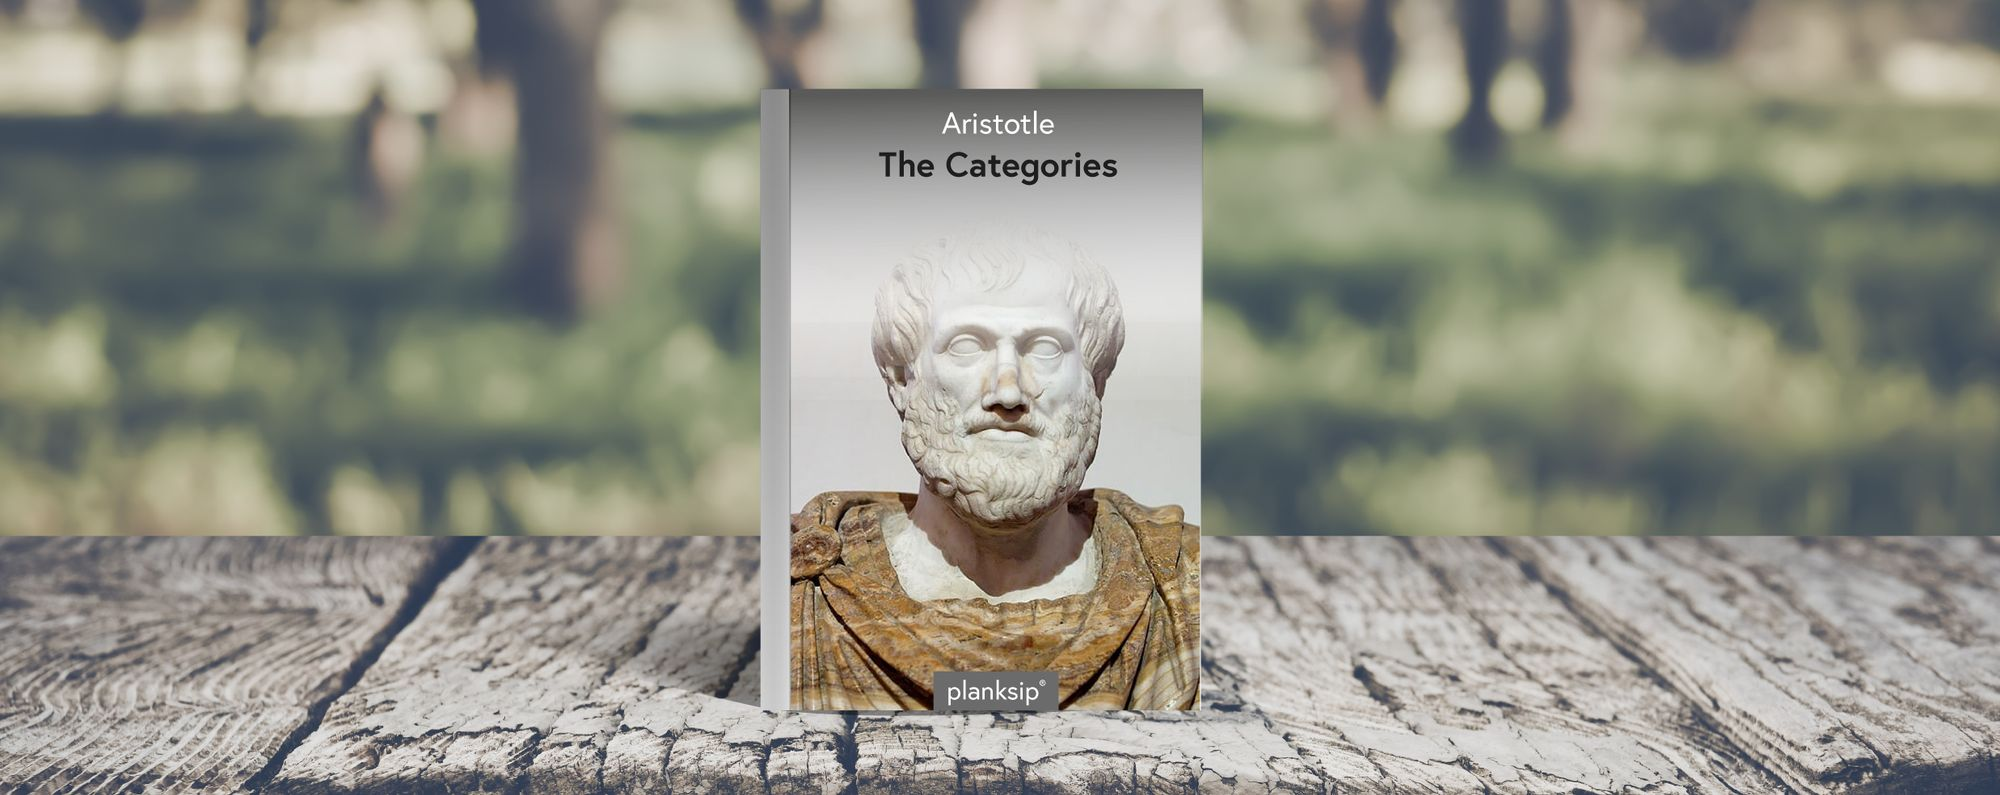 The Categories by Aristotle (384-322 BC). Published by planksip